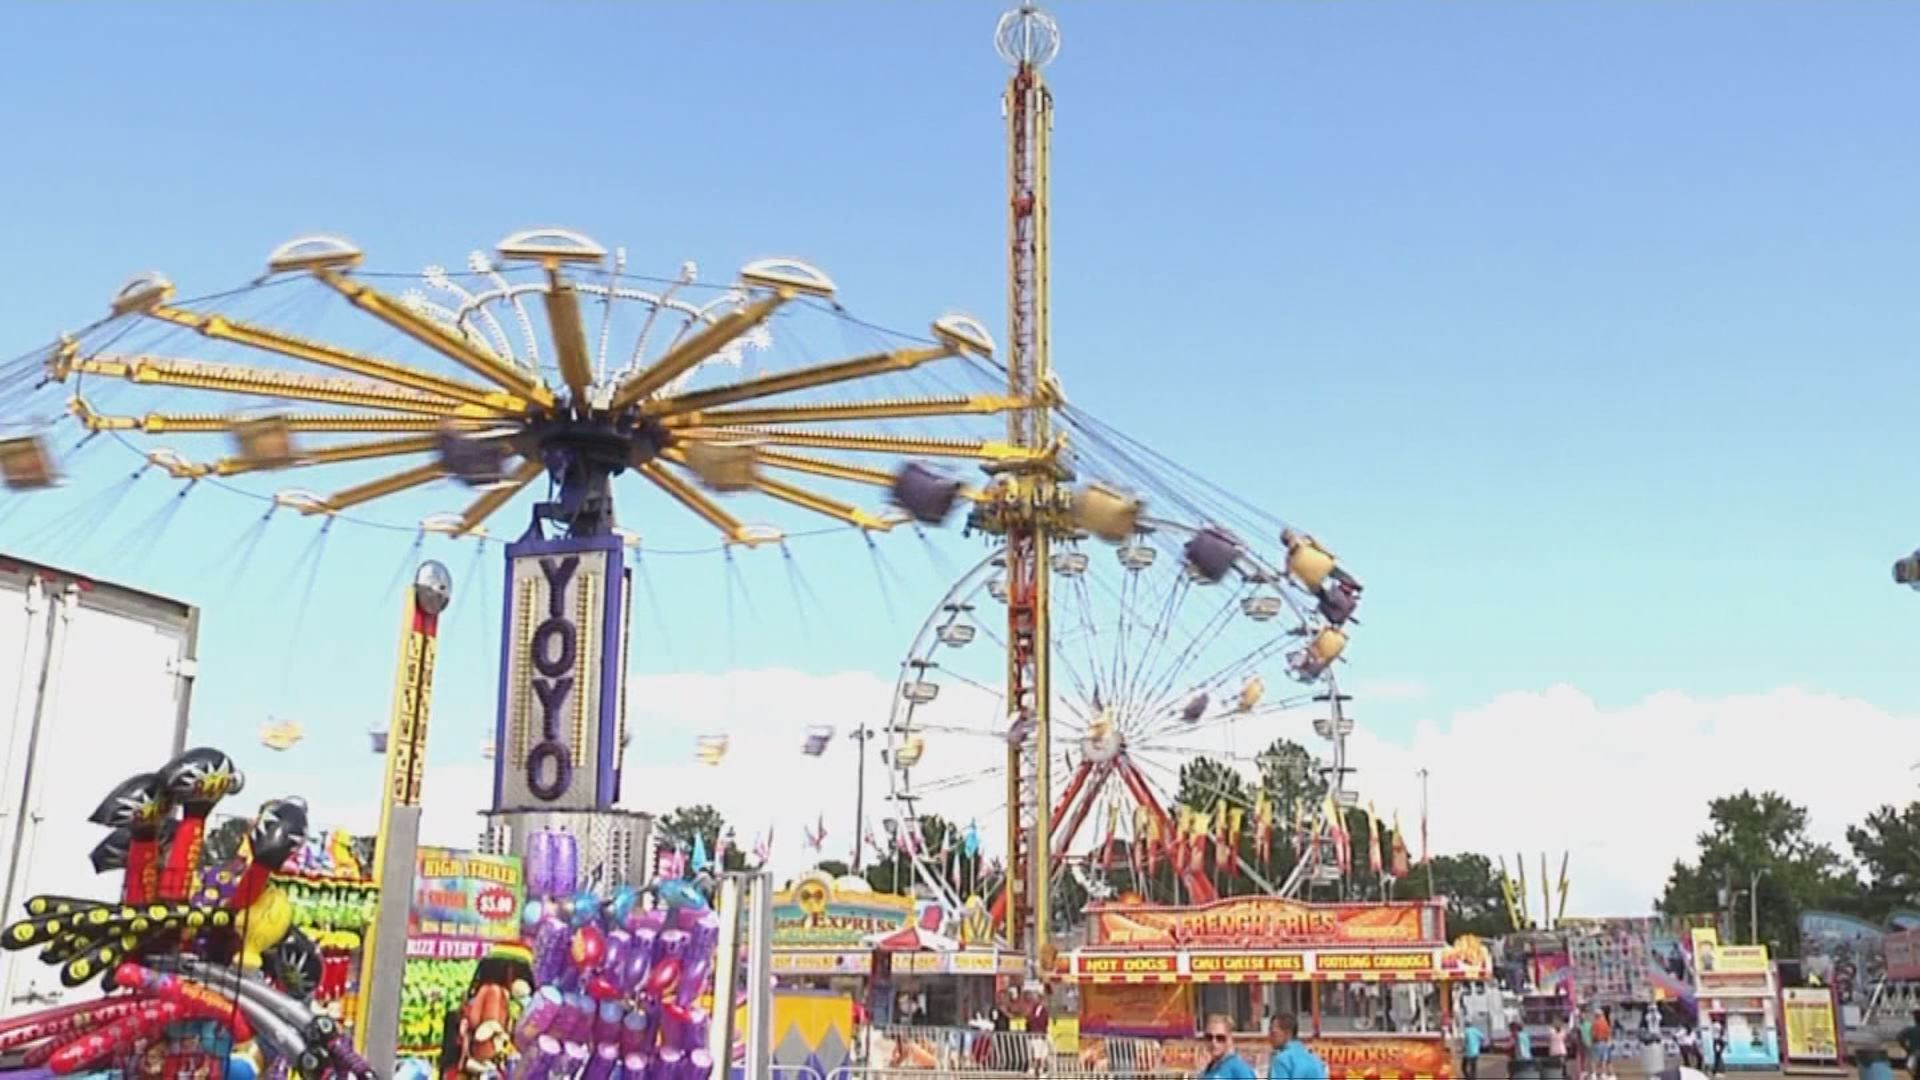 Mississippi State Fair_56224